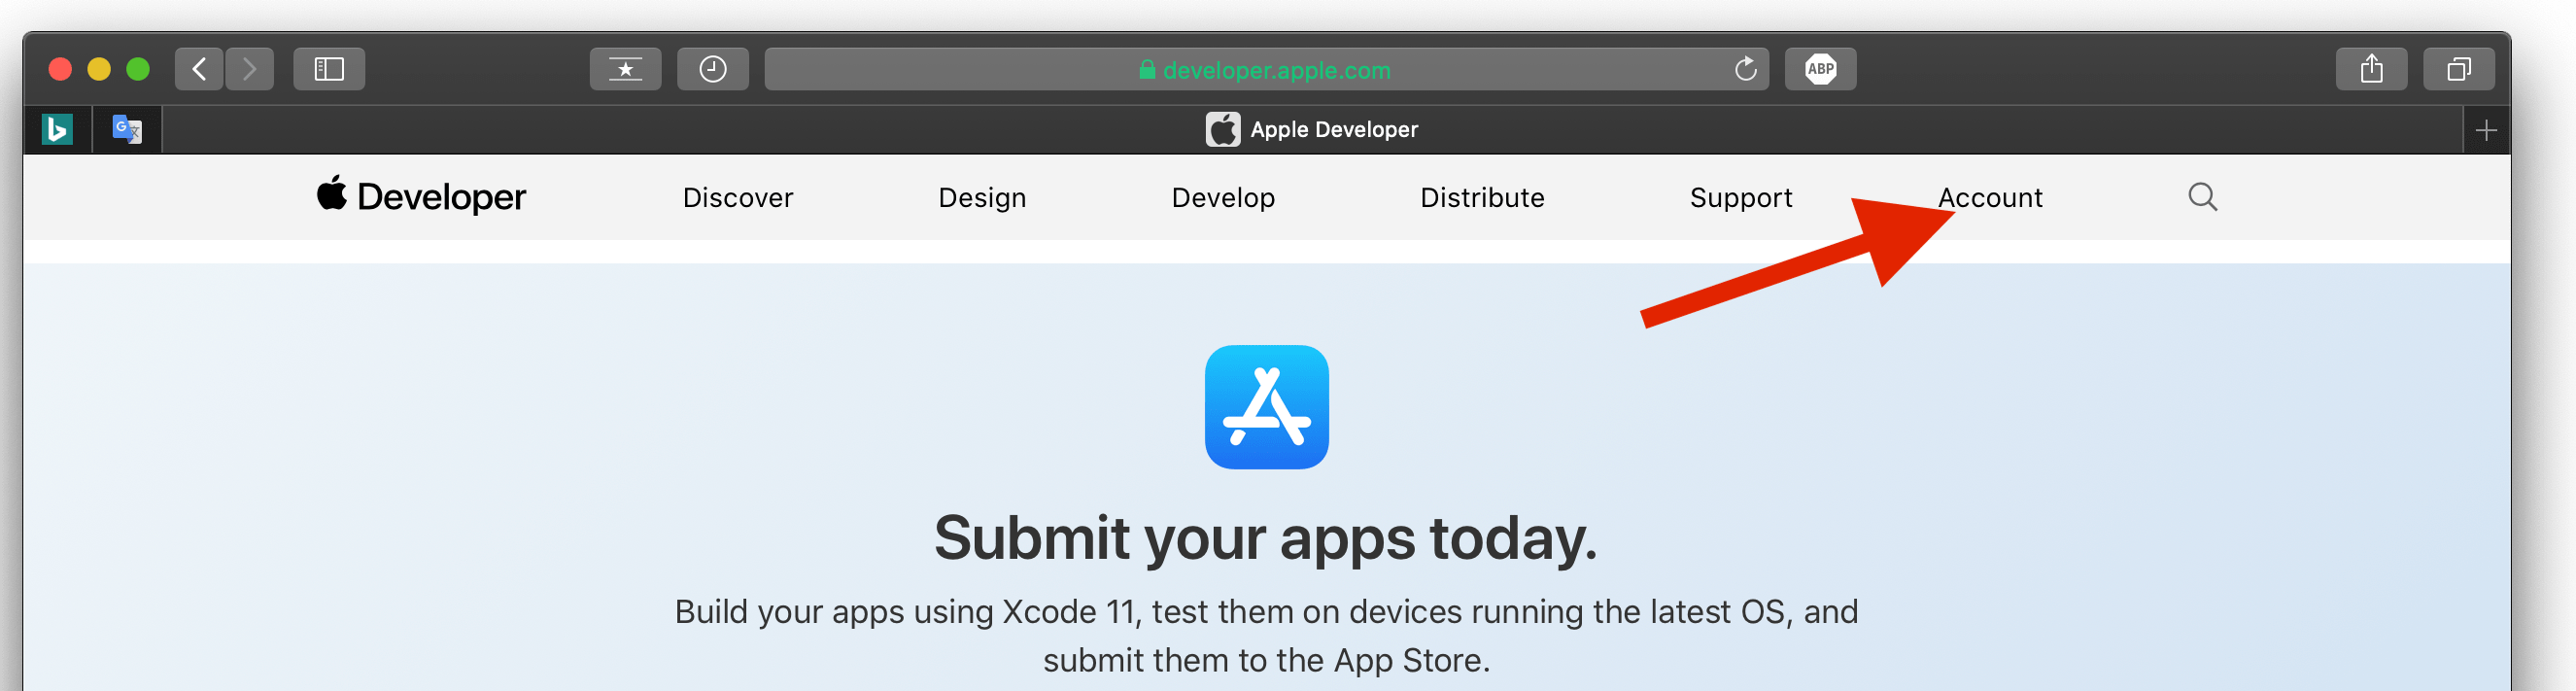 How to register at developer.apple.com